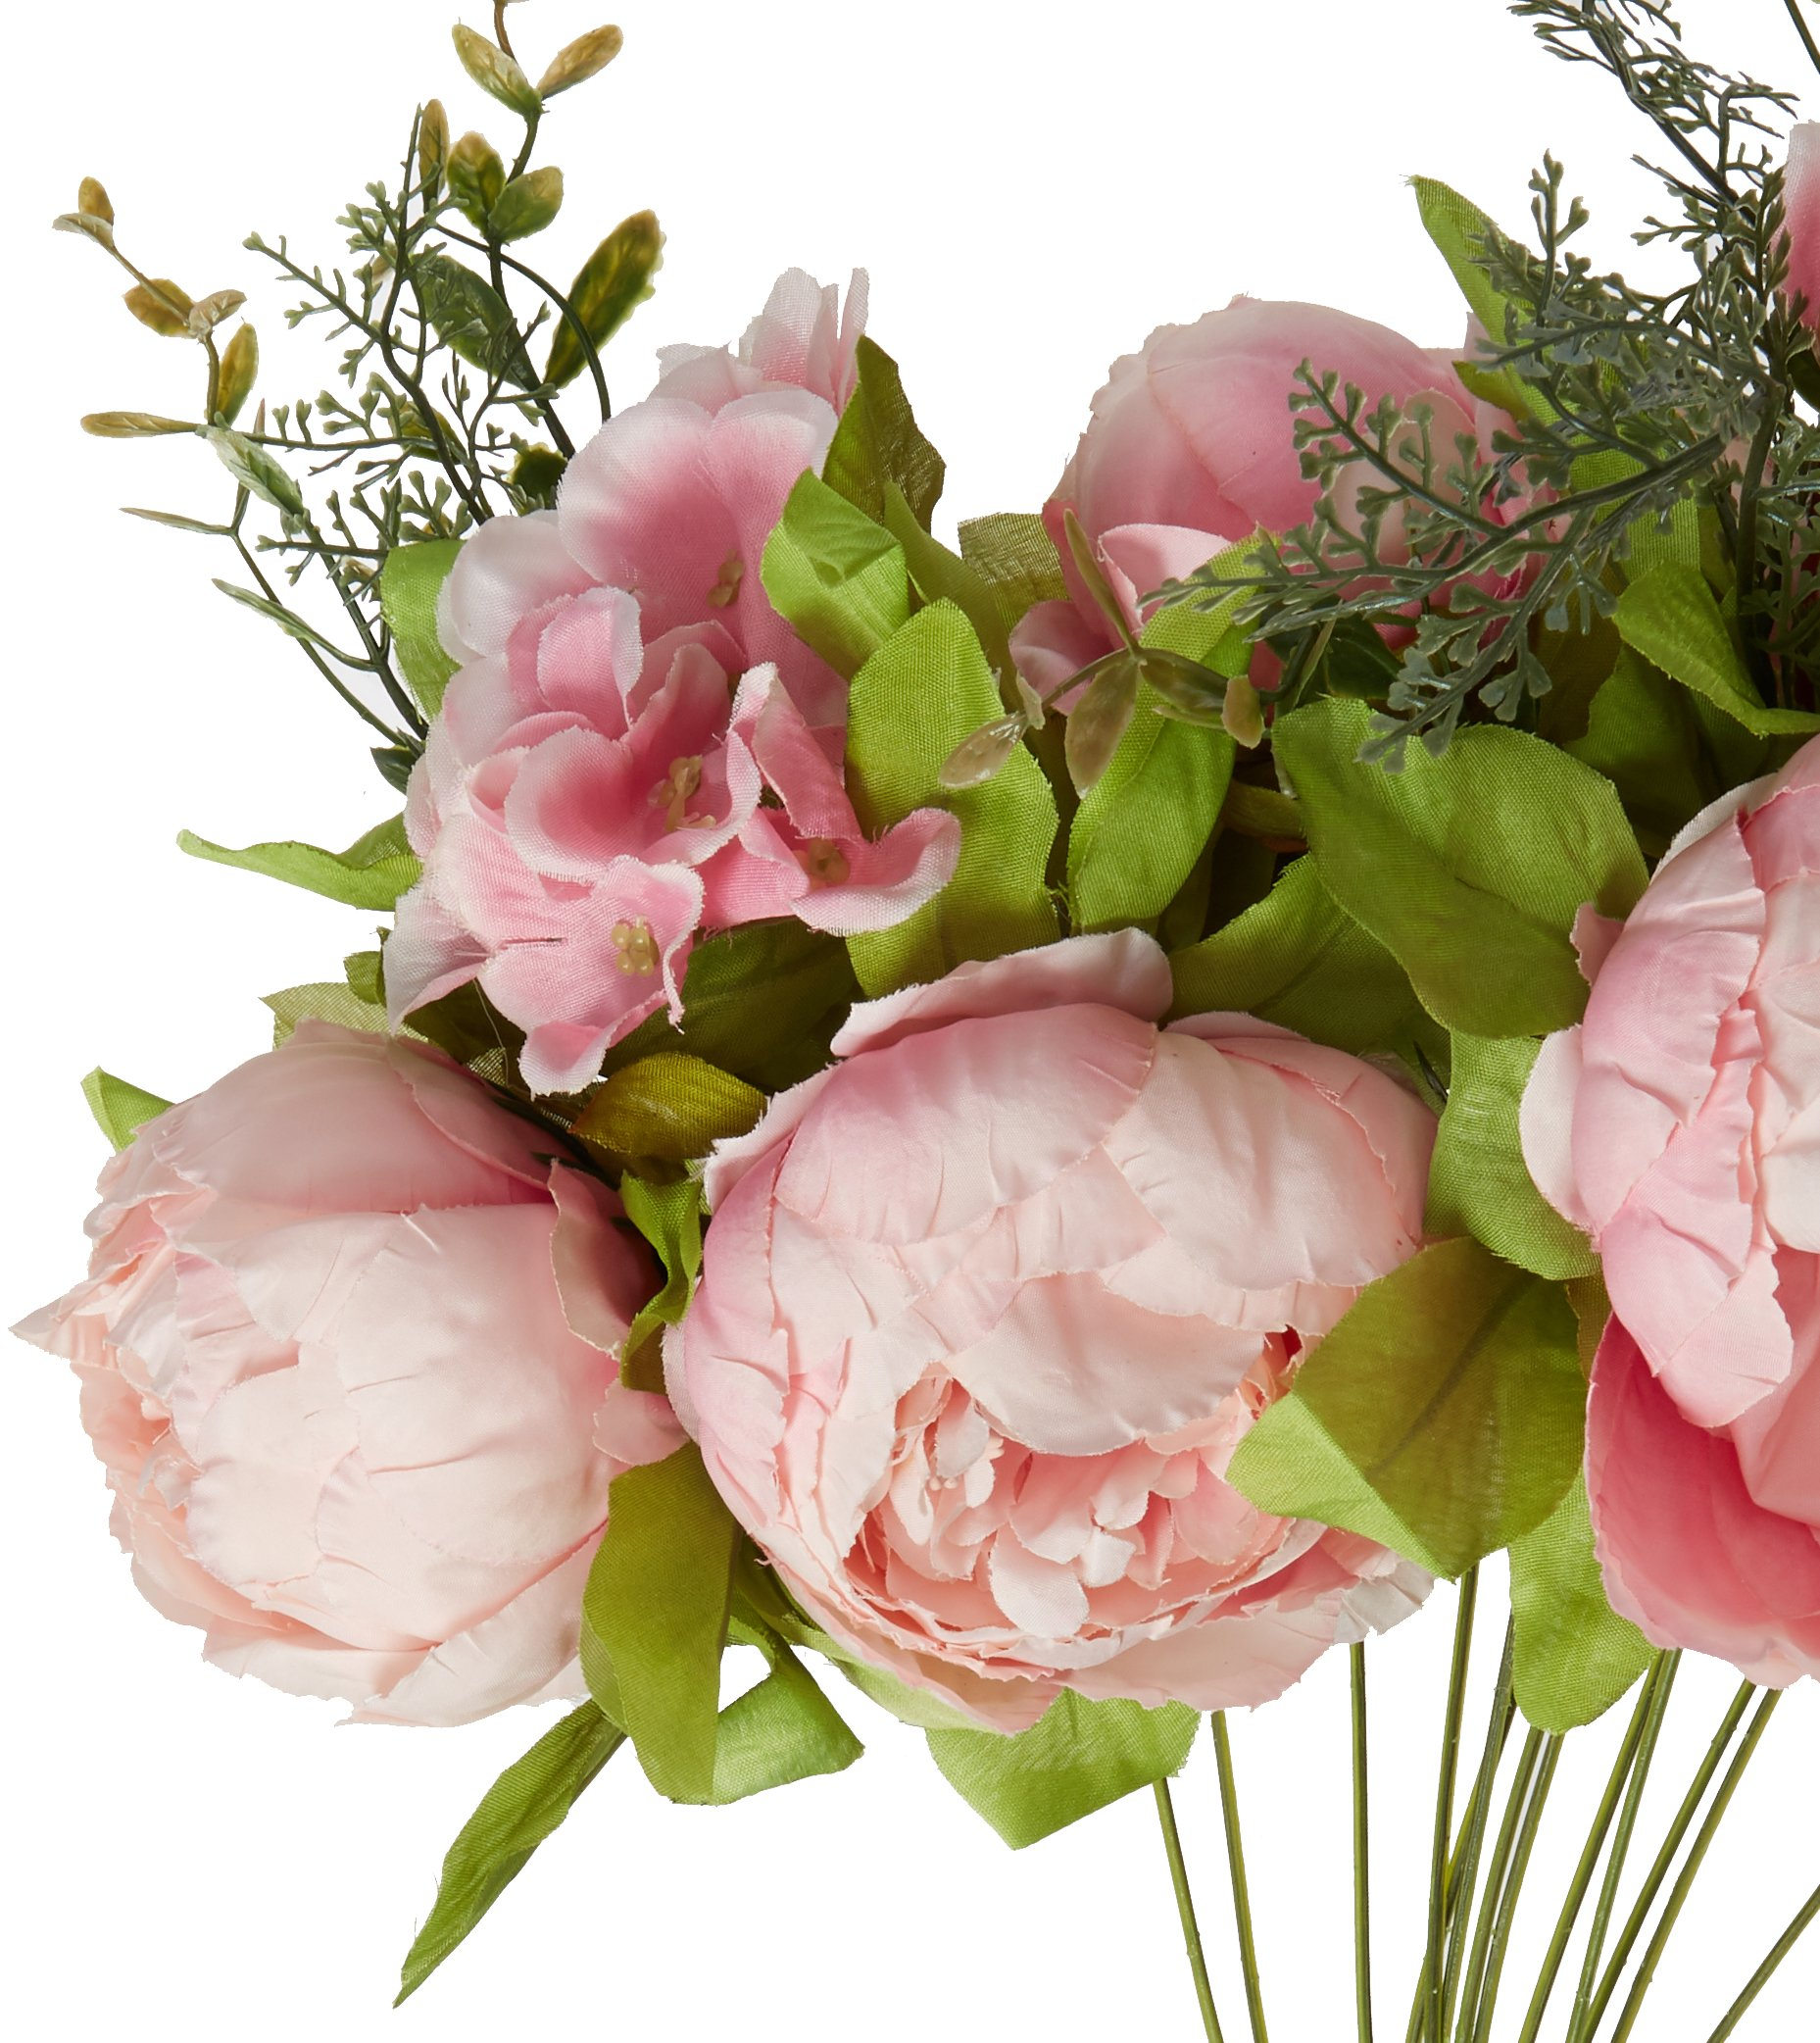 Leagel-Fake-Flowers-Vintage-Artificial-Peony-Silk-Flowers-Bouquet-Wedding-Home-Decoration-Pack-of-1